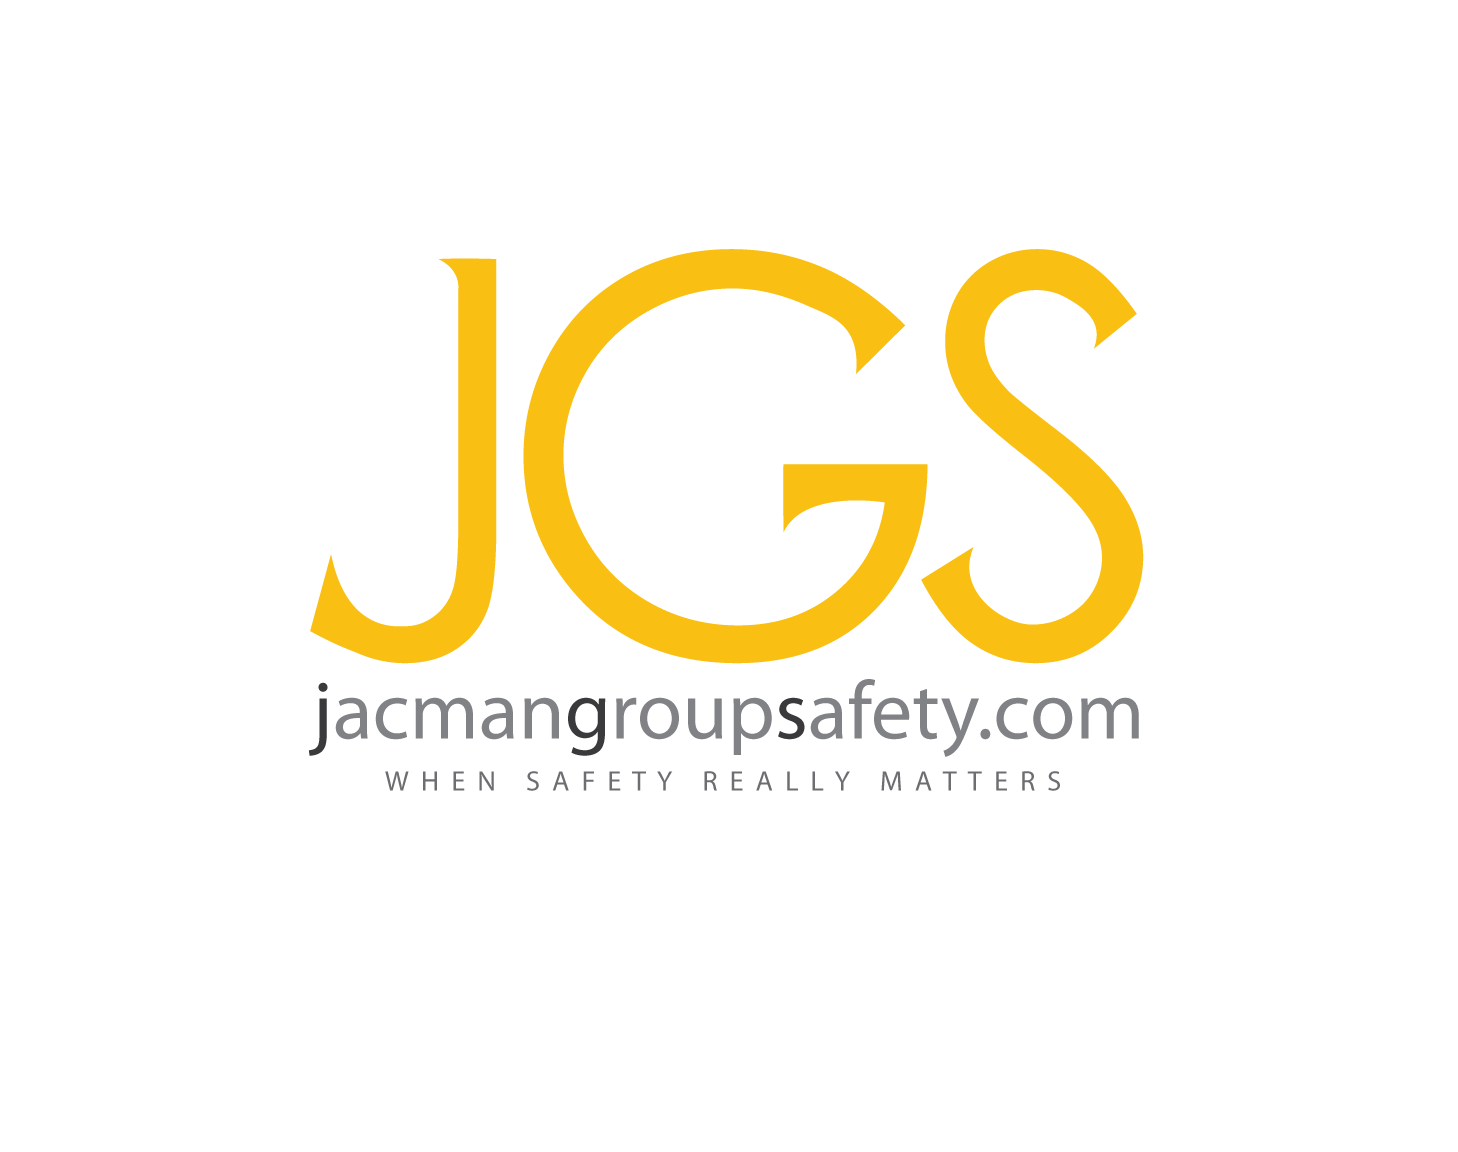 Logo Design by Roy Ferre - Entry No. 148 in the Logo Design Contest The Jacman Group Logo Design.